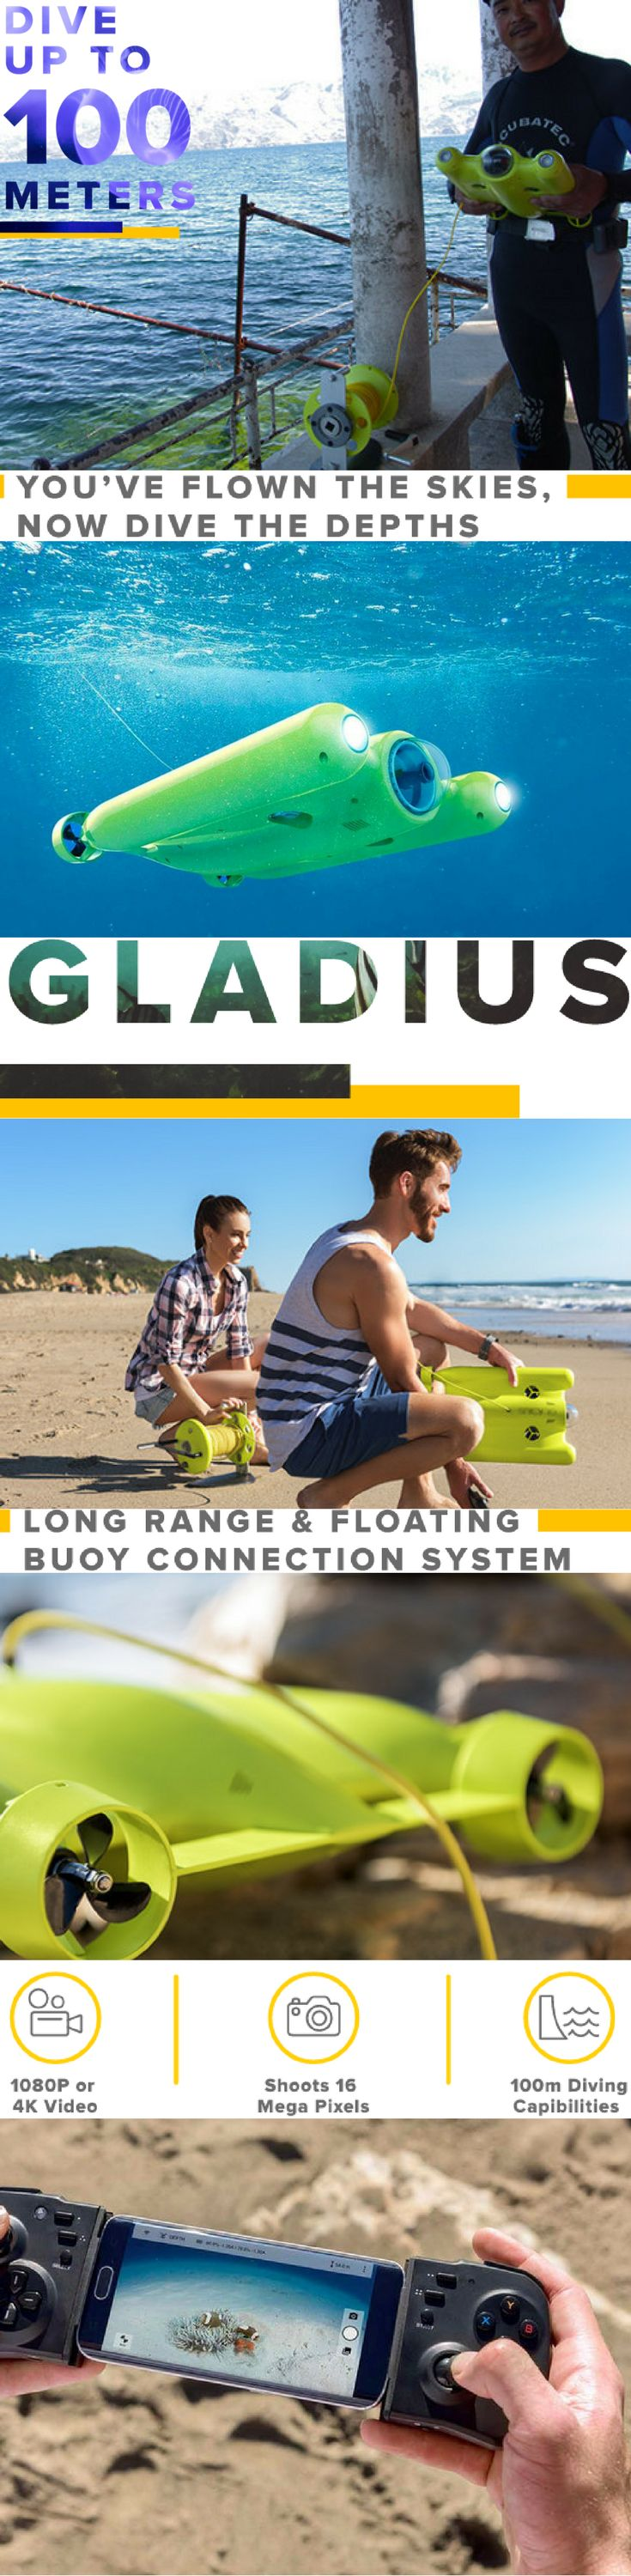 Gladius is a smart underwater drone built for filming, observing & exploring up to 100m (328ft) deep with 3 hour runtime. The ultra HD 1080P/4K camera uses low light adaptable sensors & image quality optimization algorithms for stunning in-water photos & videos. Gladius is controlled through a smartphone remote control & omni directional quad thruster system. Whether you're a scuba diver, underwater photographer, oceanographer or just want to have fun, Gladius is intelligently designed for…